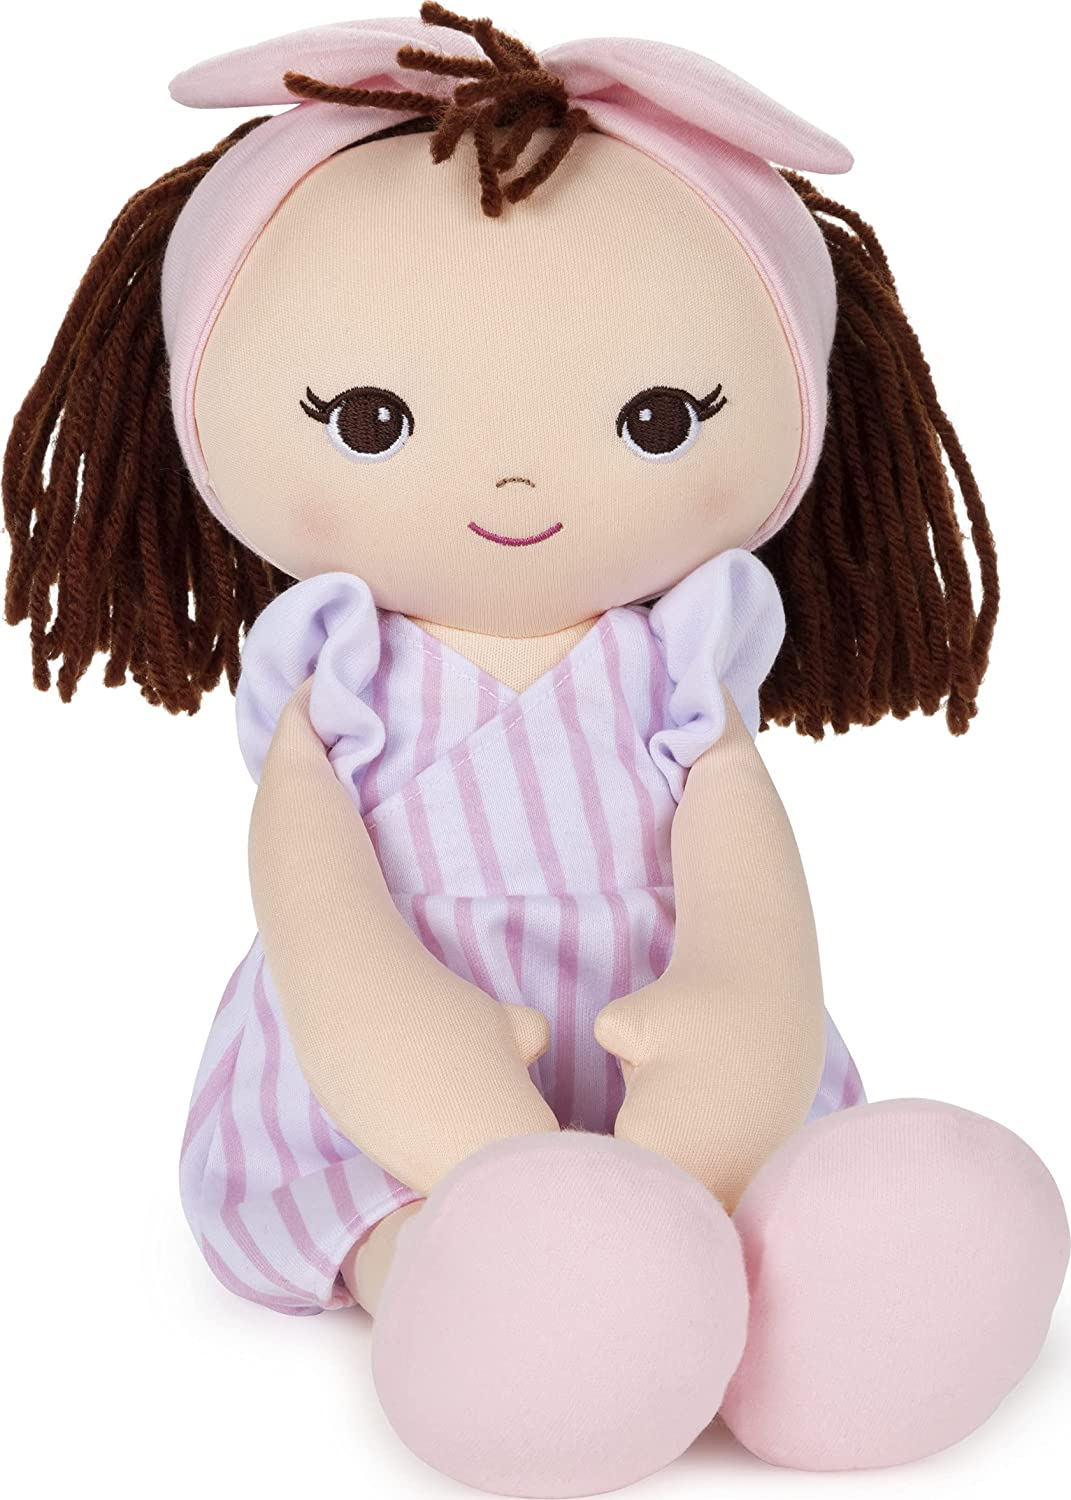 Tampa Mall GUND New product type Baby Toddler Doll Plush Striped Pink 8